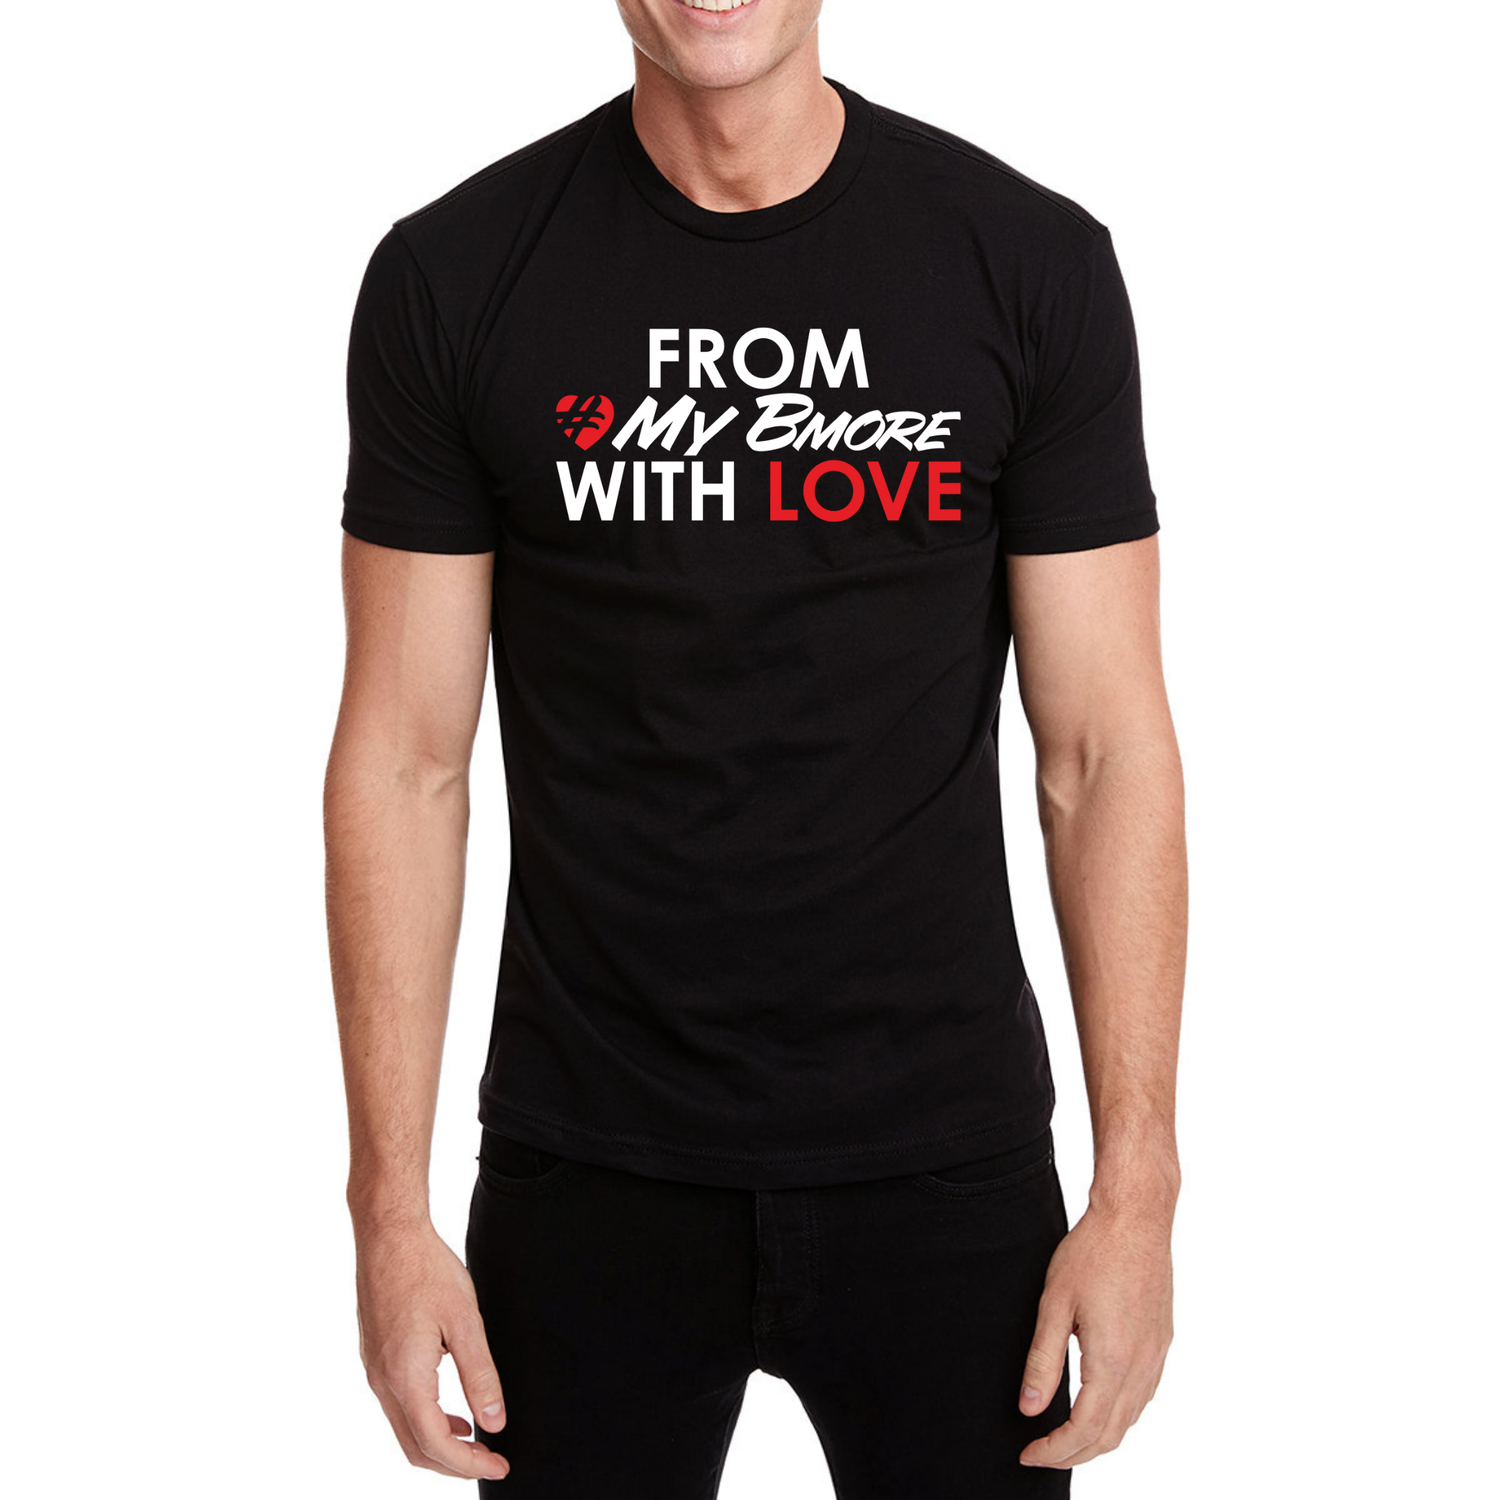 Image of From #MyBmore With Love - Special Edition T-Shirt - Black